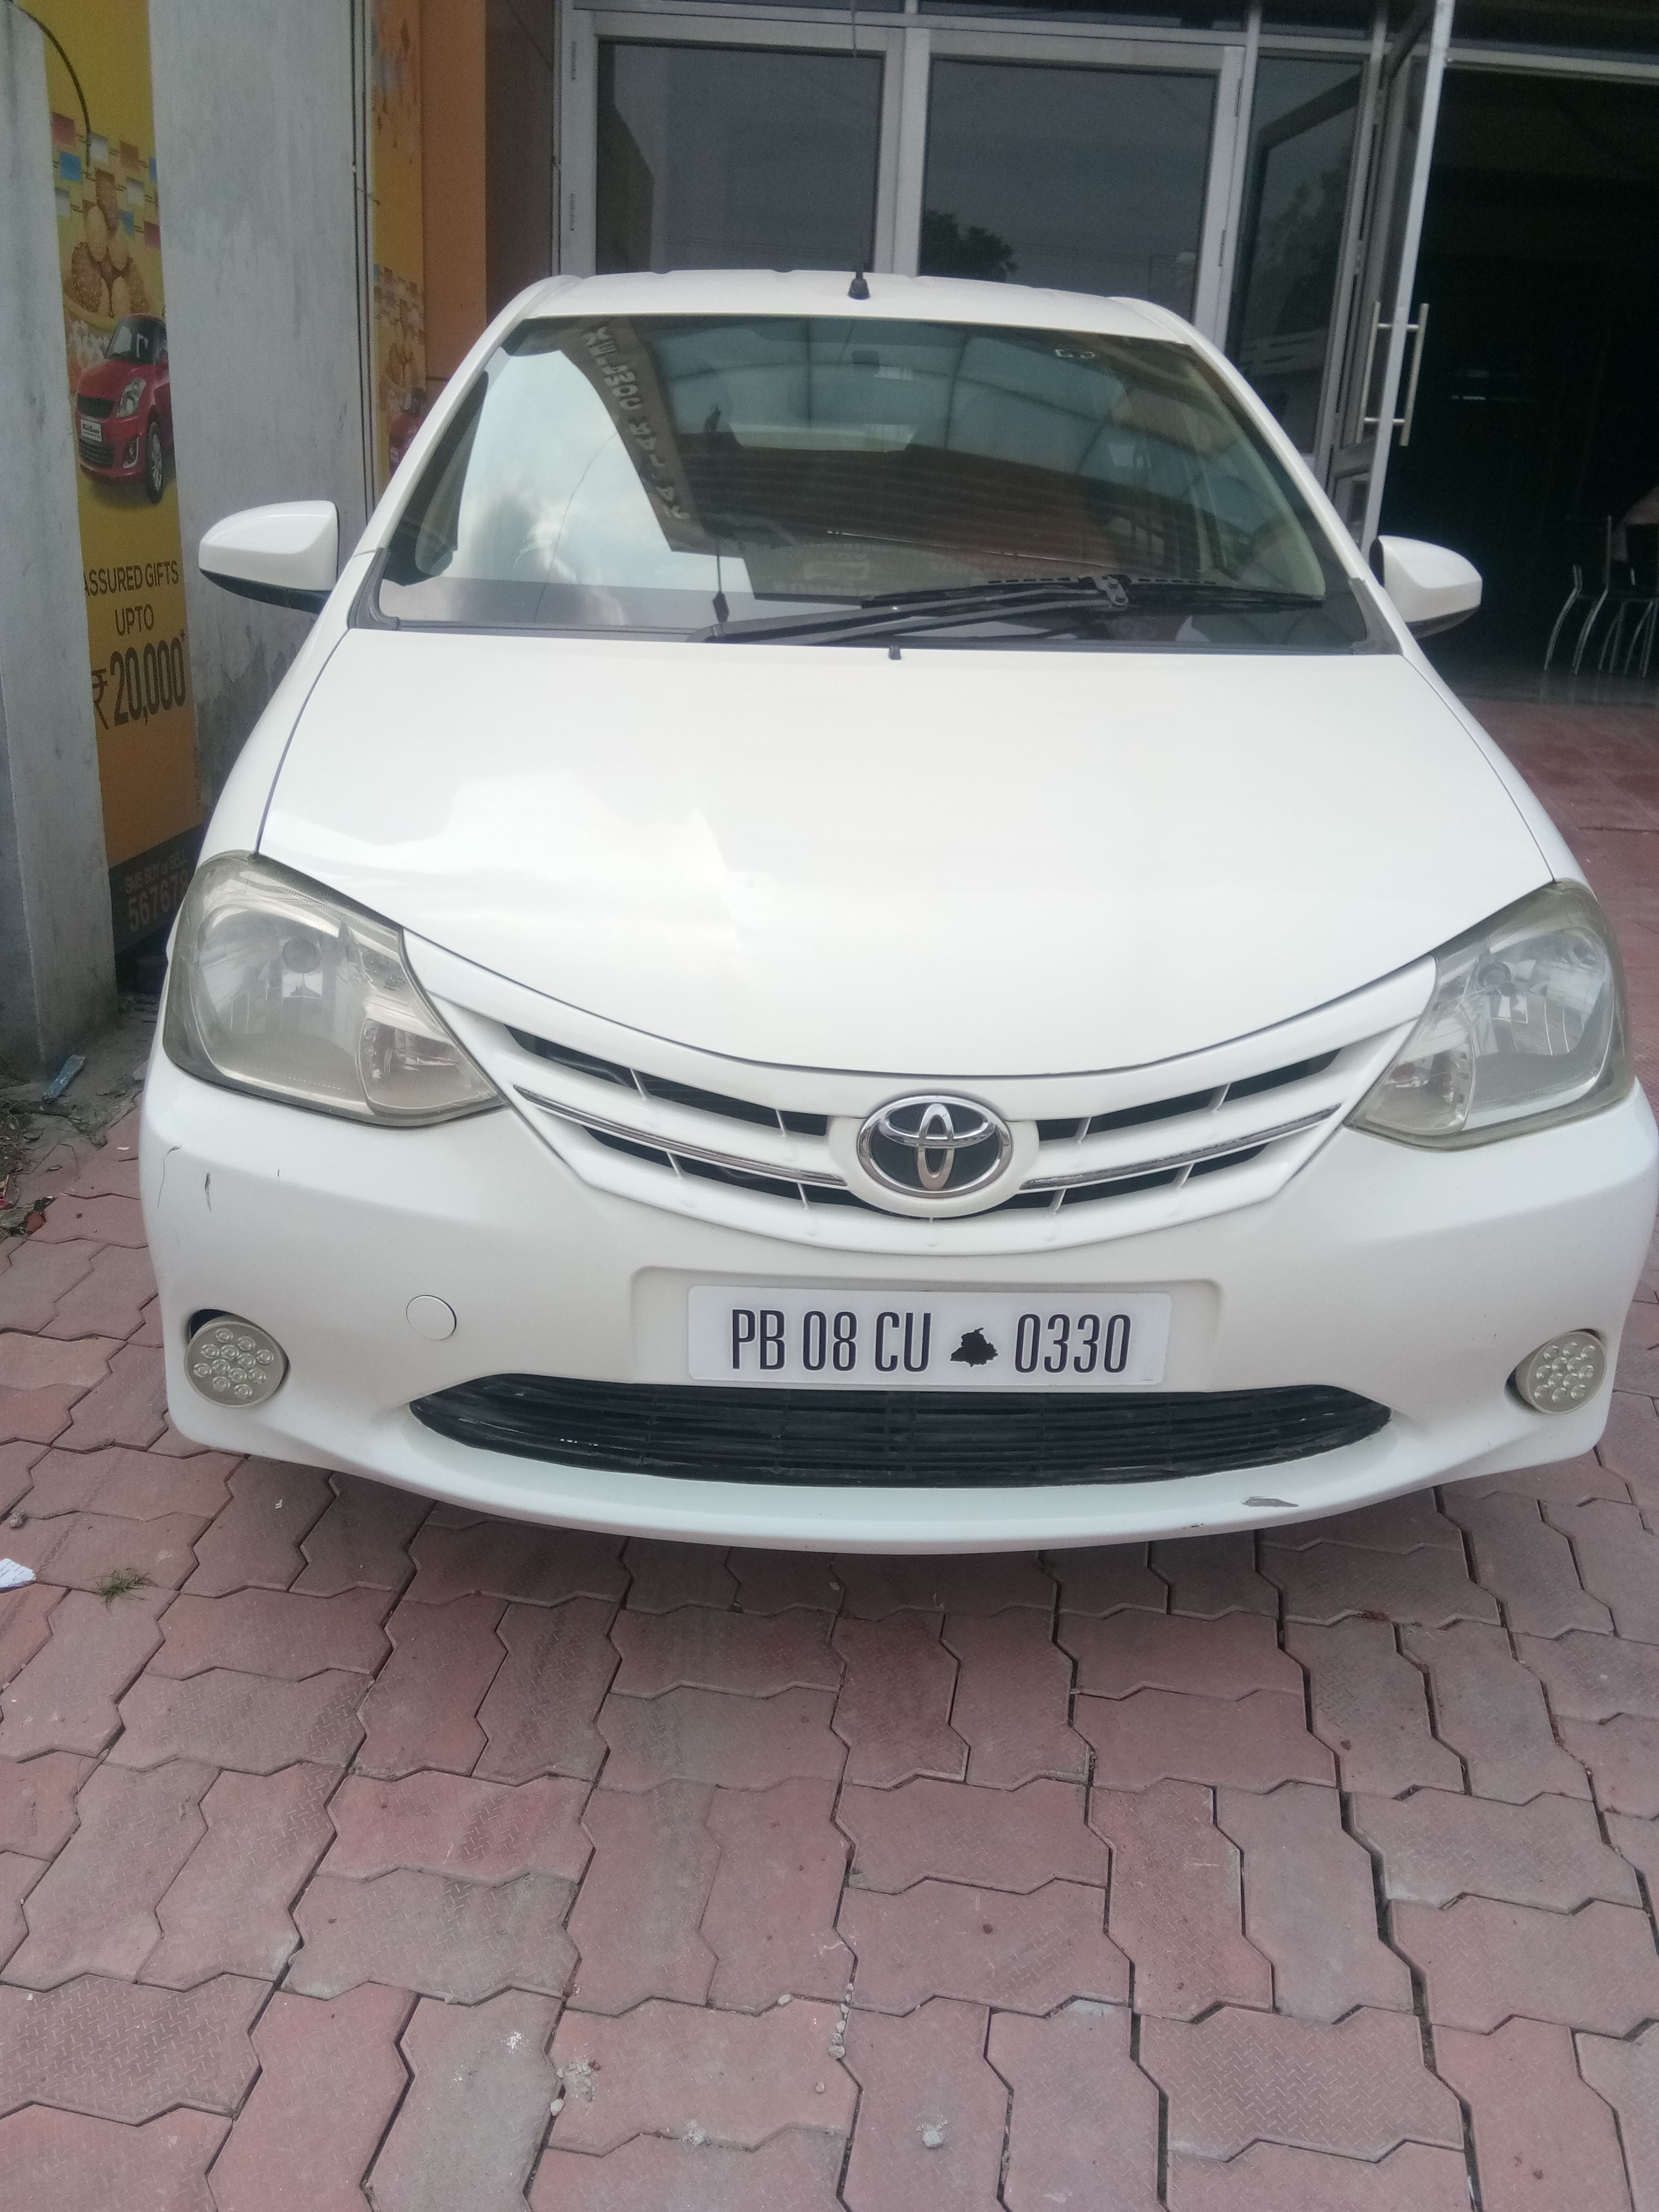 Used Cars in Hoshiarpur - Certified Second Hand Cars for